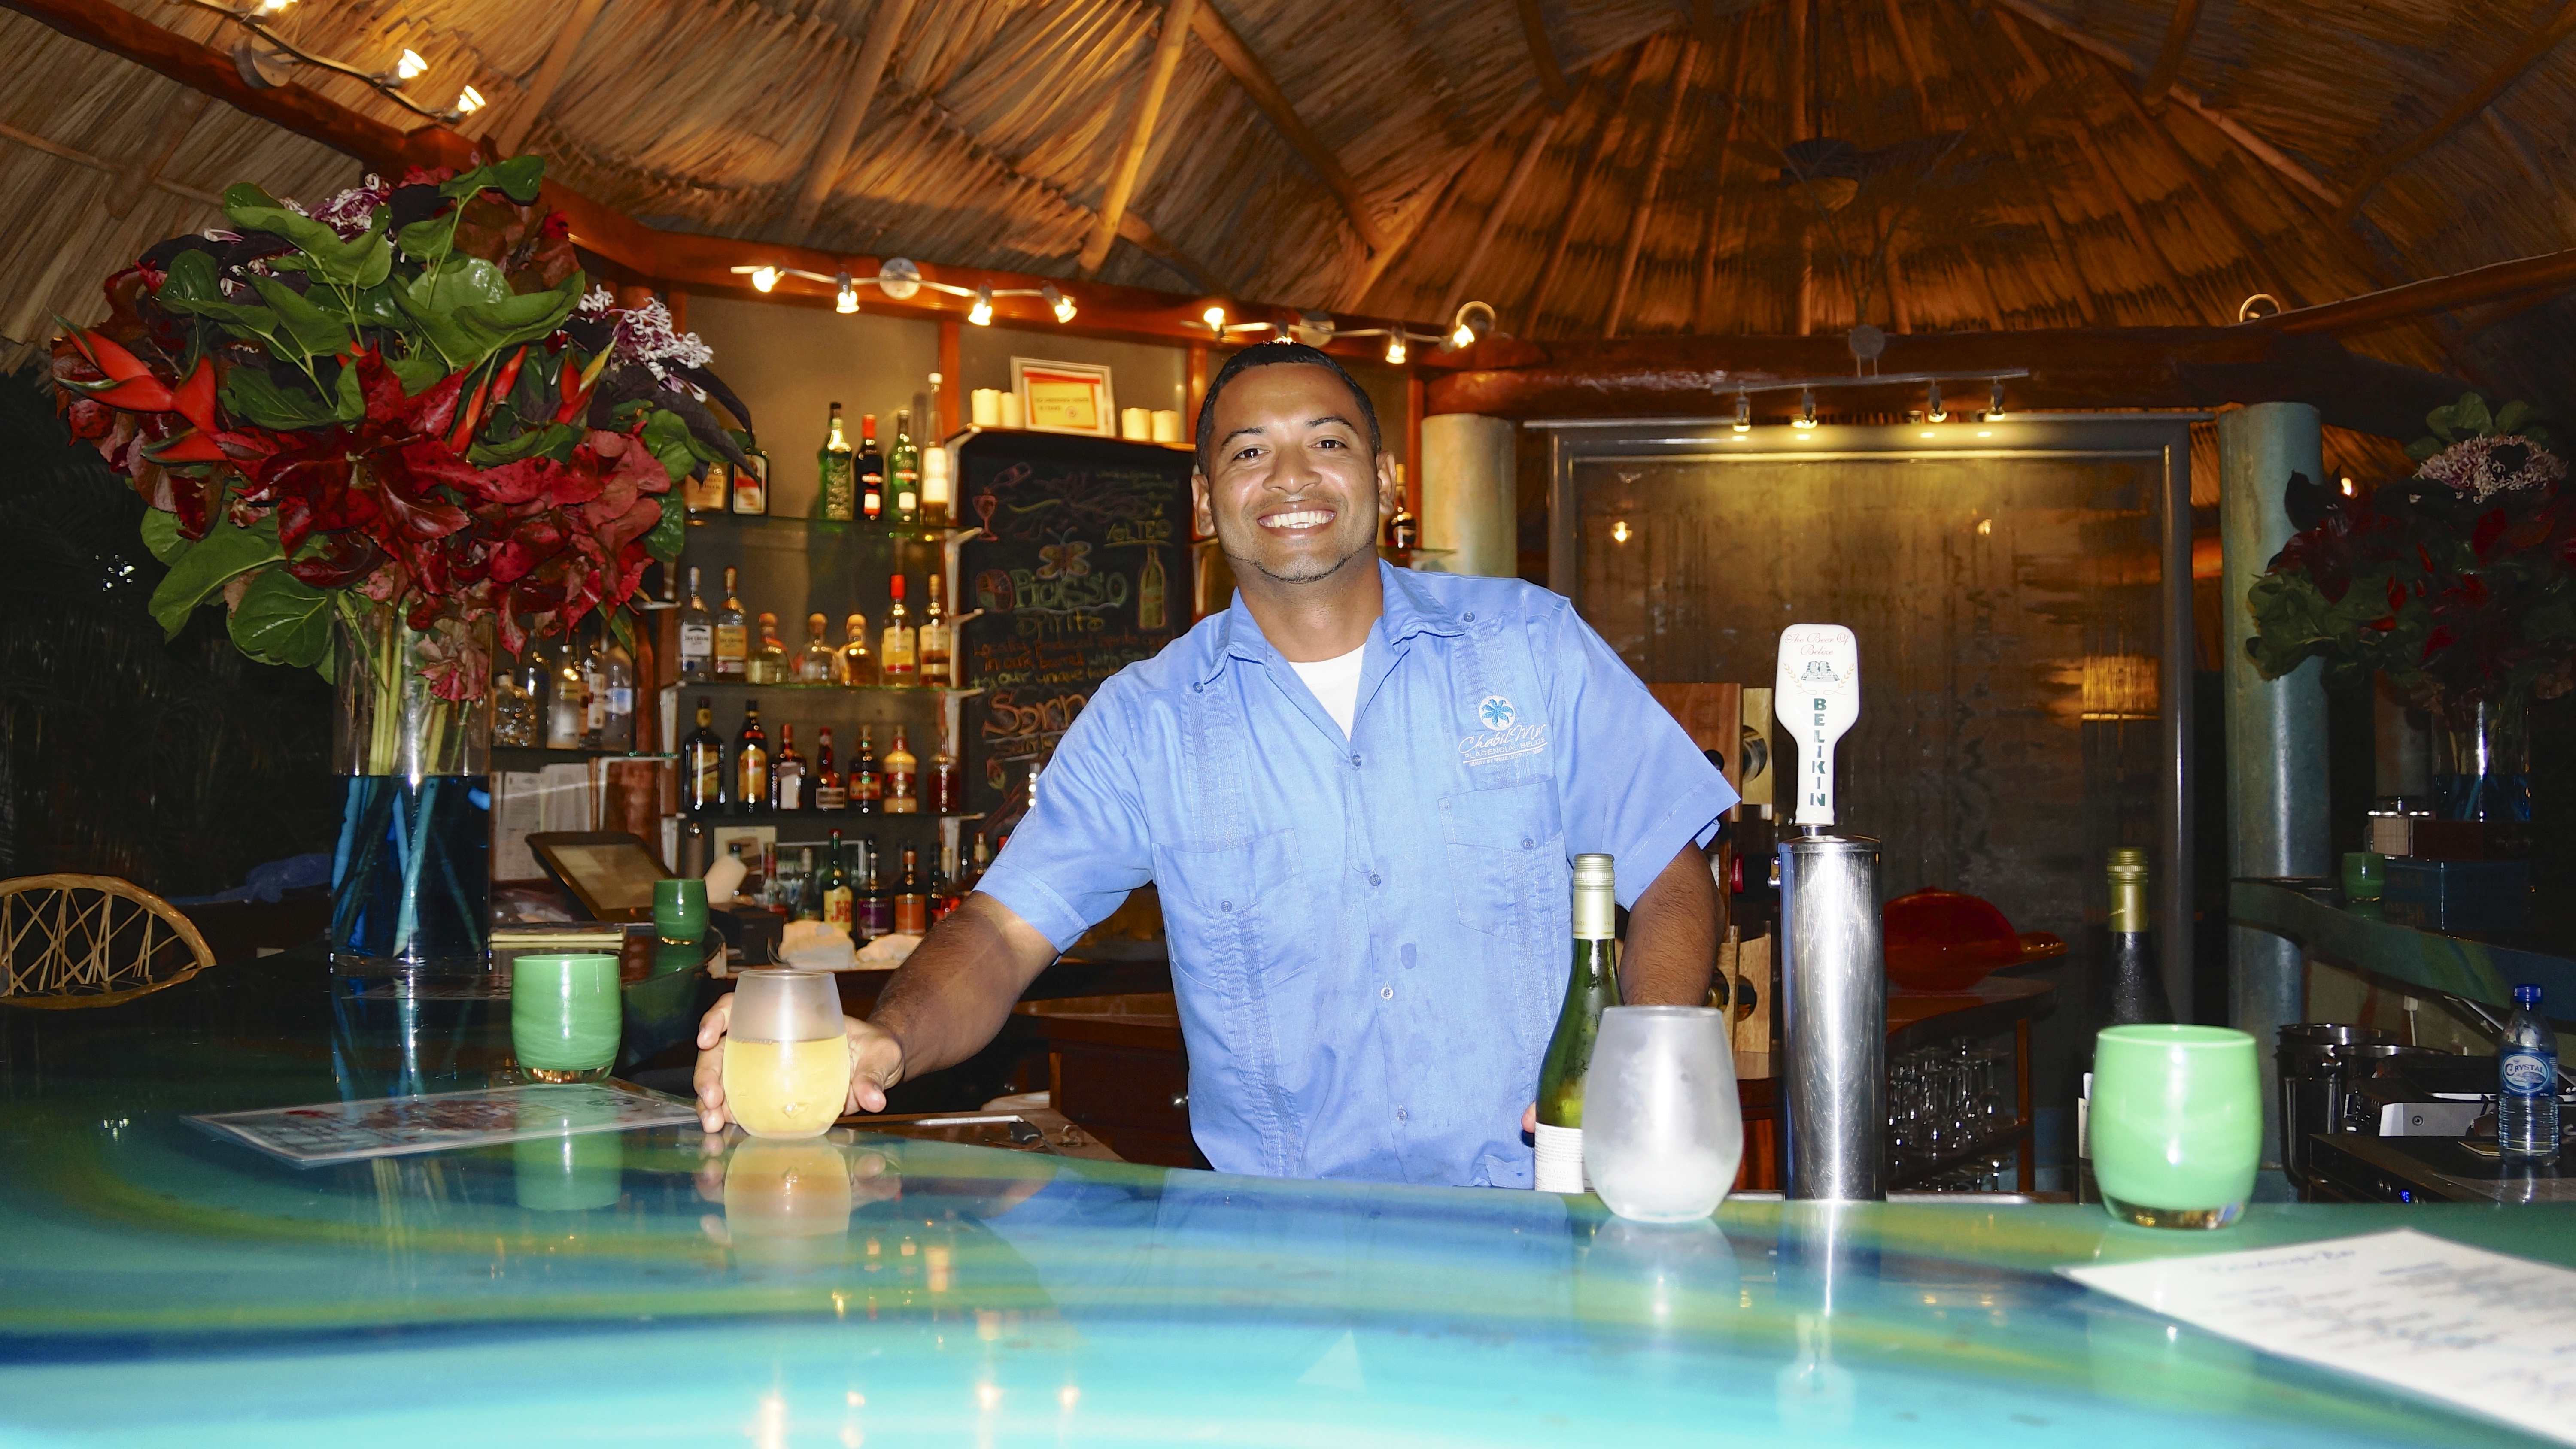 Darren serving at Bar 2 Chabil Mar Resort Belize